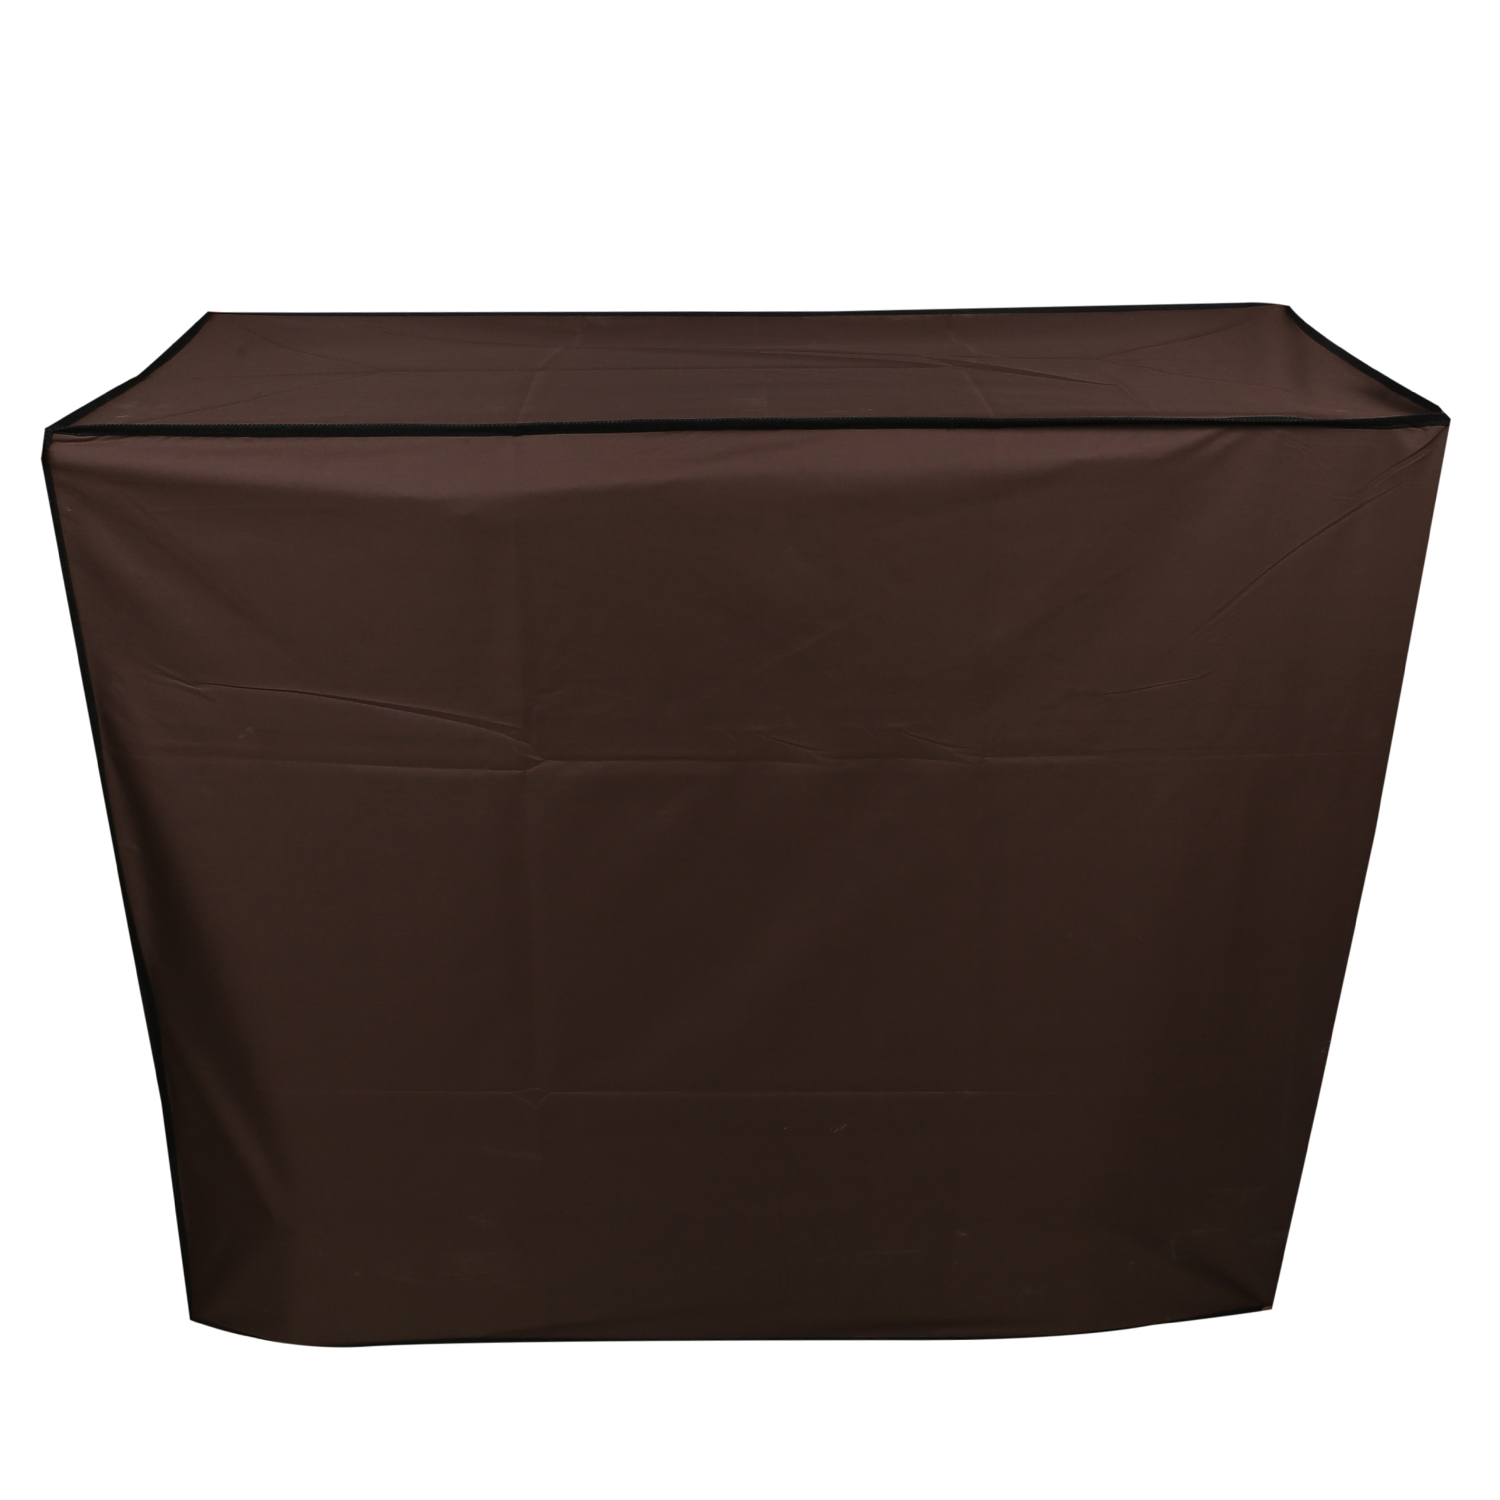 Kuber Industries PVC AC Cover of Indoor and Outdoor Unit for 1.5 Ton Capacity (Brown) -CTKTC5775